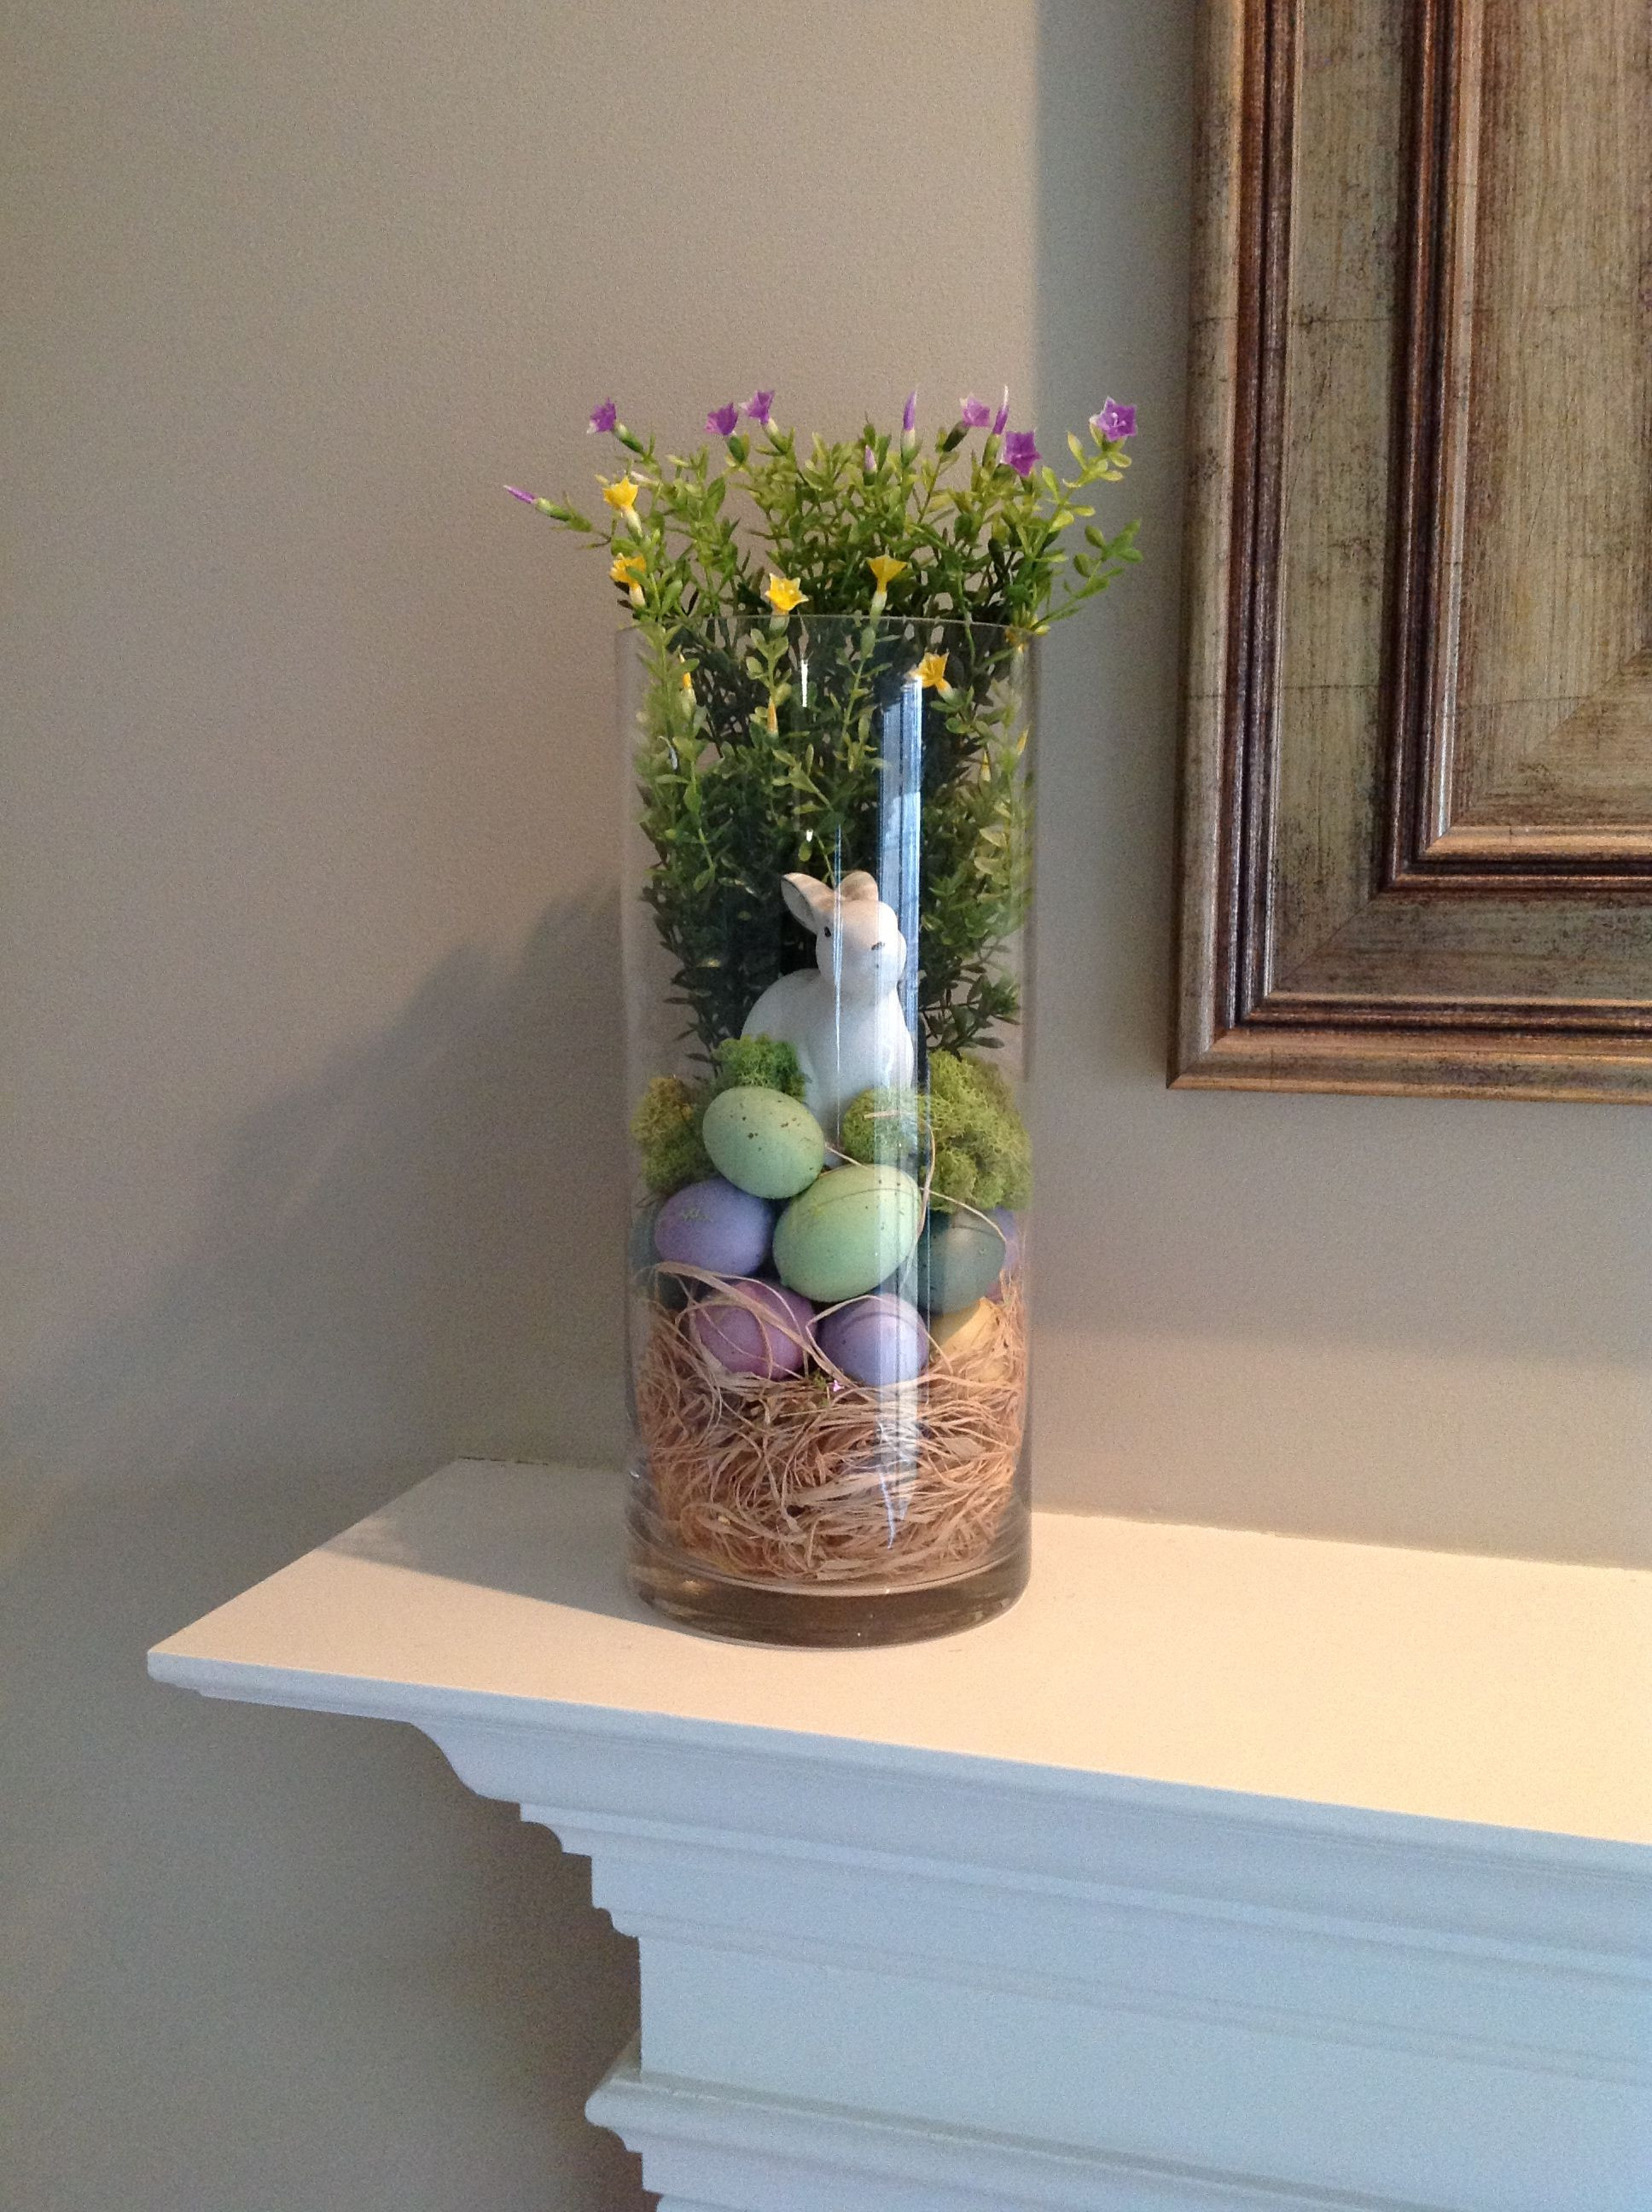 most expensive vase in the world of hurricane glass vase filler for spring and easter on the mantel in hurricane glass vase filler for spring and easter on the mantel lori lubker pin easter hurricane rabbit